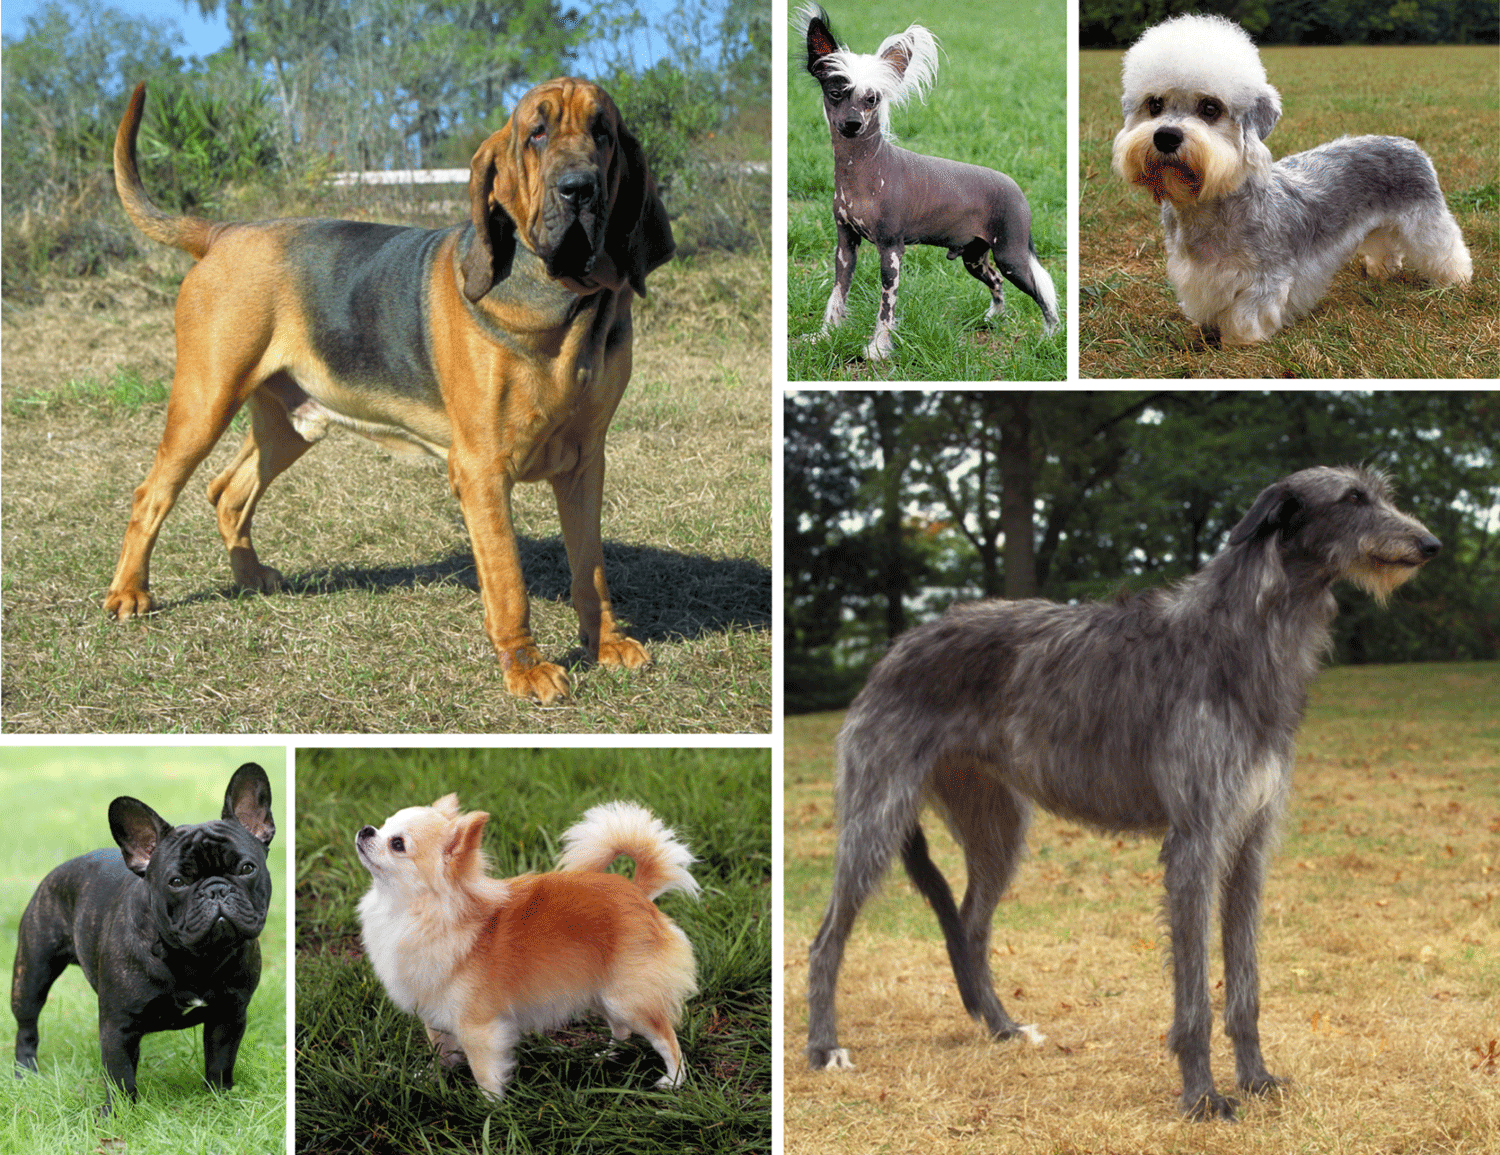 Six photographs showing a small sampling of the diversity of modern dog breeds.